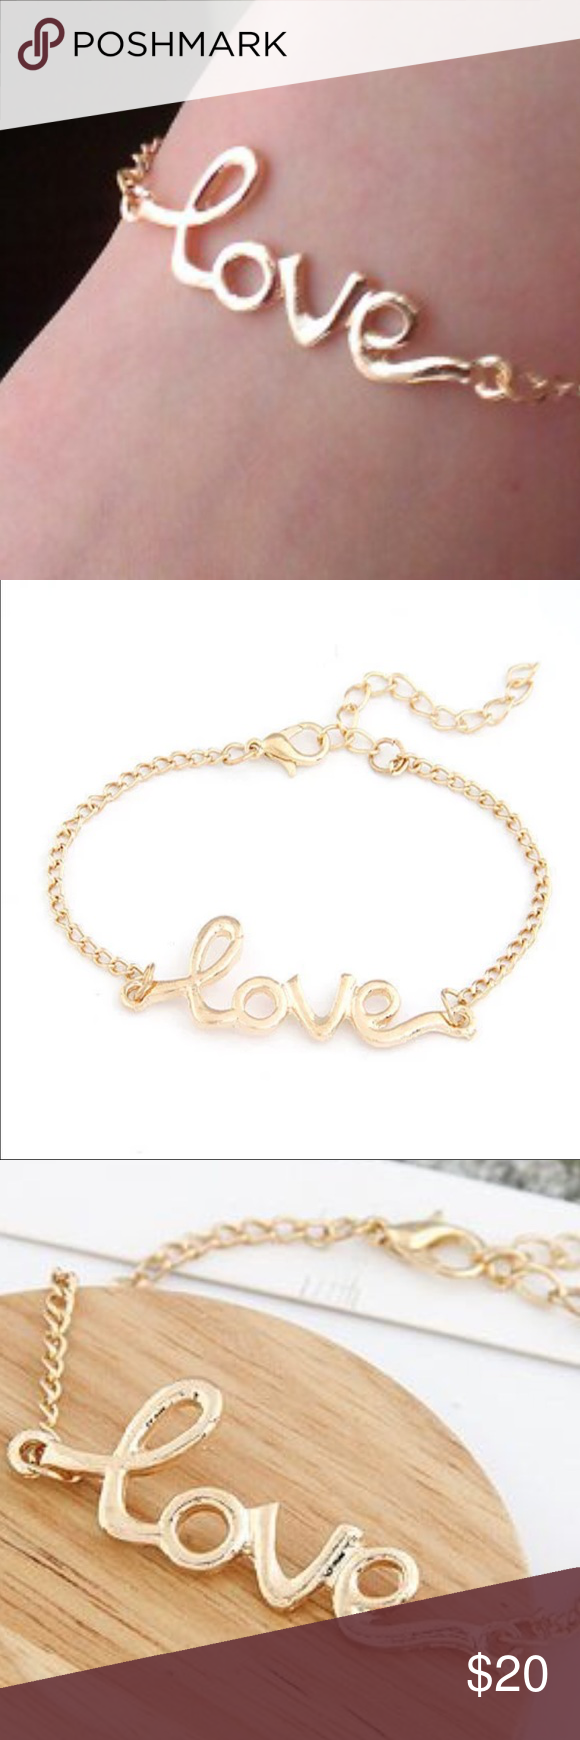 """""""Love"""" bracelet gold LOVE This nice gold plated love chain bracelet is a cute inspirational bracelet that can be worn by itself or with your favorite jewelry. Only available in Gold🎀bundle to receive discount pearl street Jewelry Bracelets"""